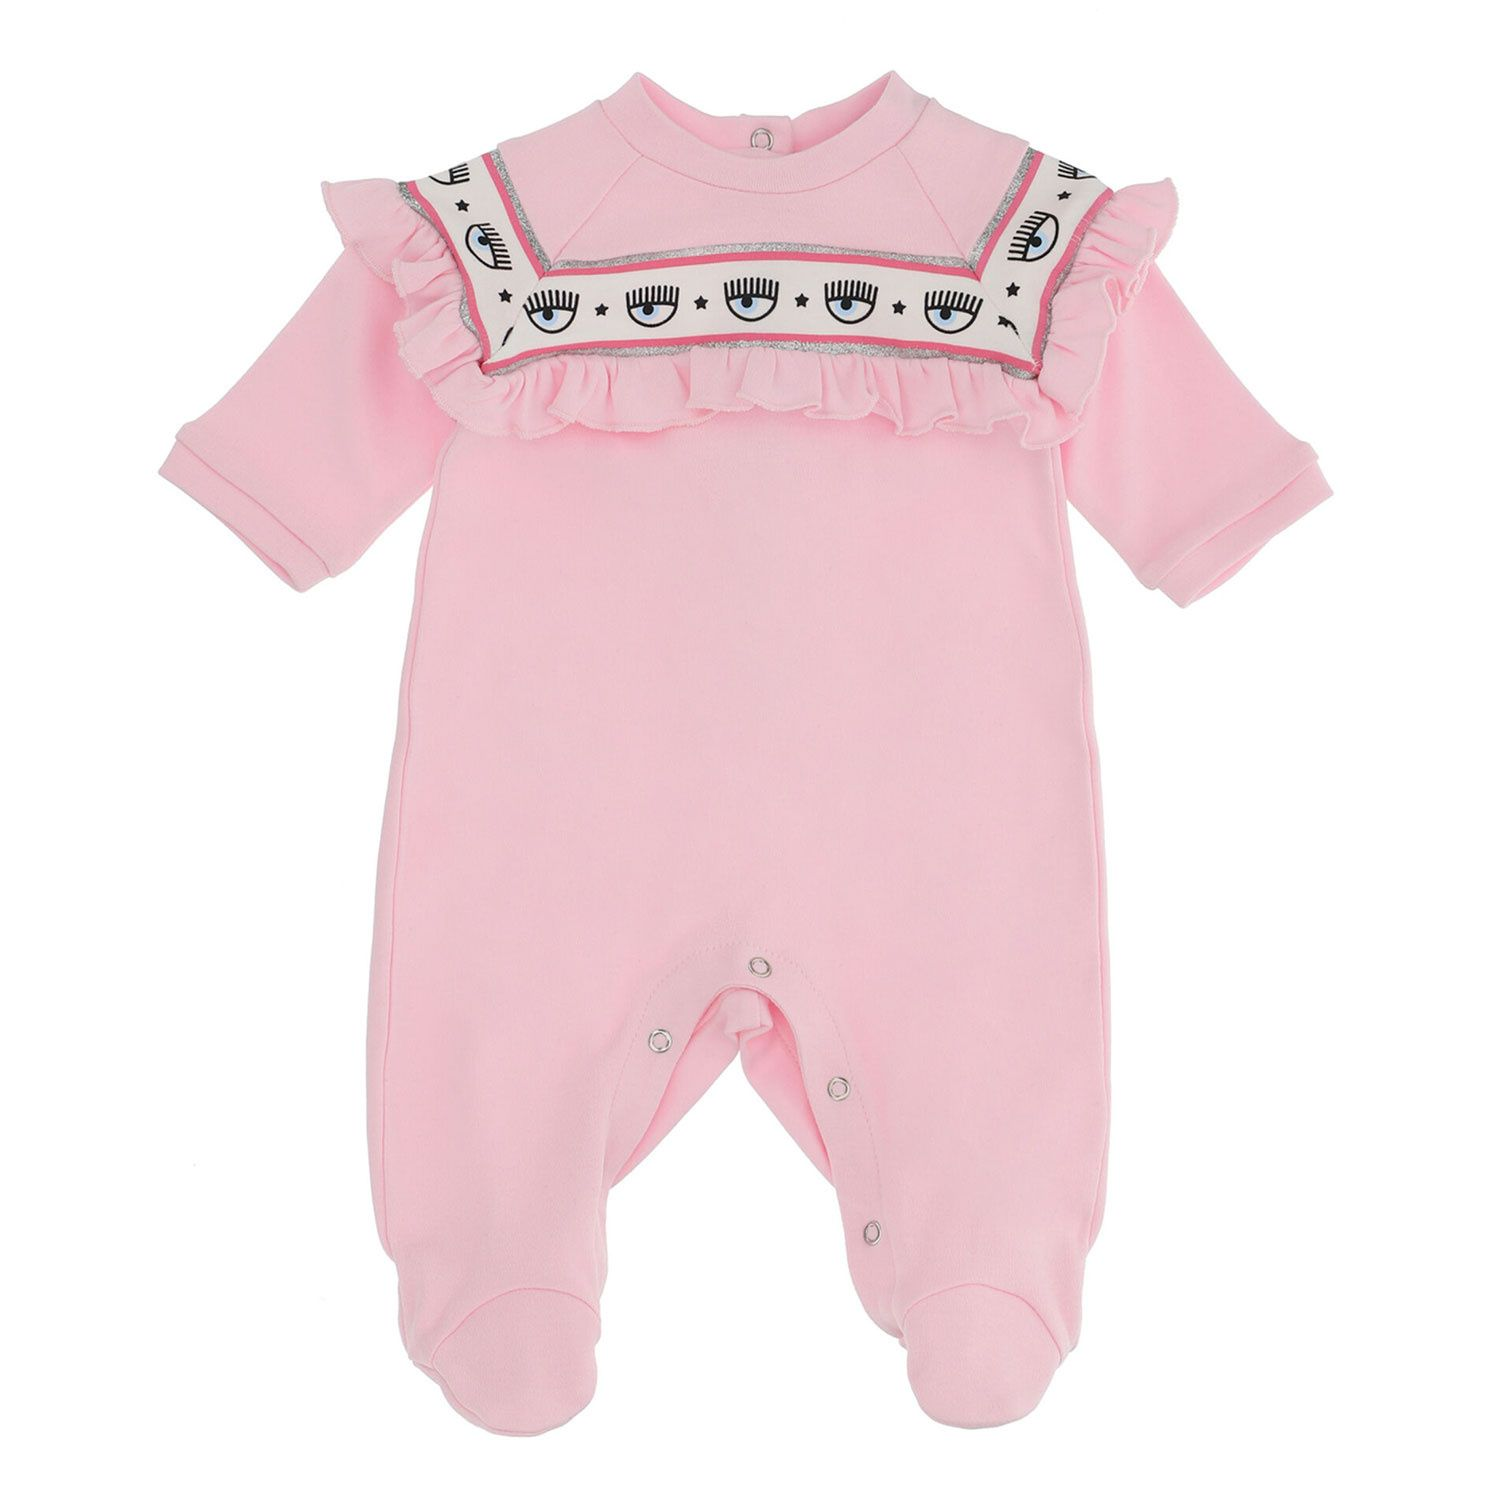 Picture of Chiara Ferragni 558212 baby playsuit pink